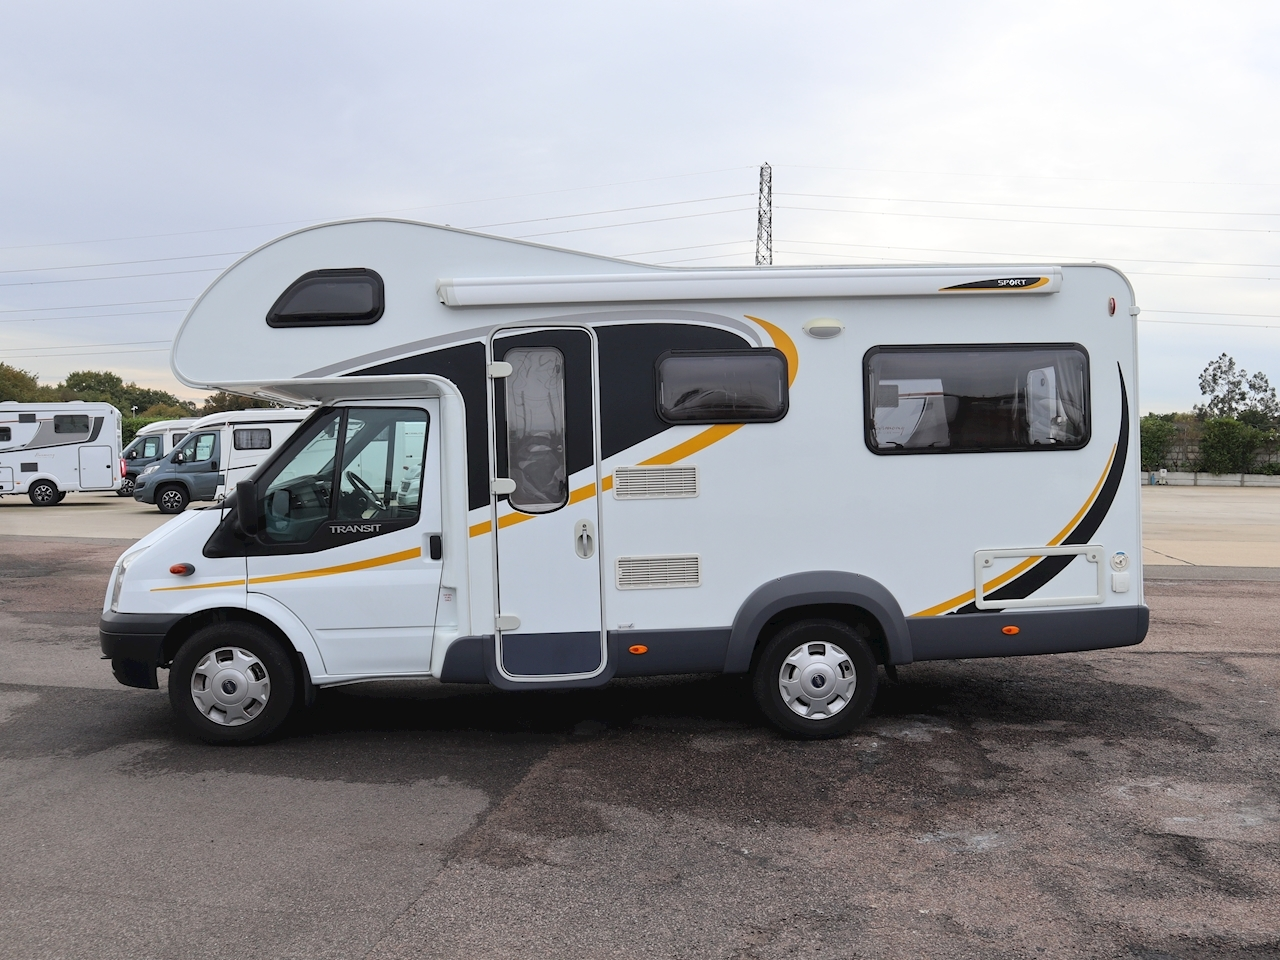 Ford Auto Trail Tribute T 625 - Large 4